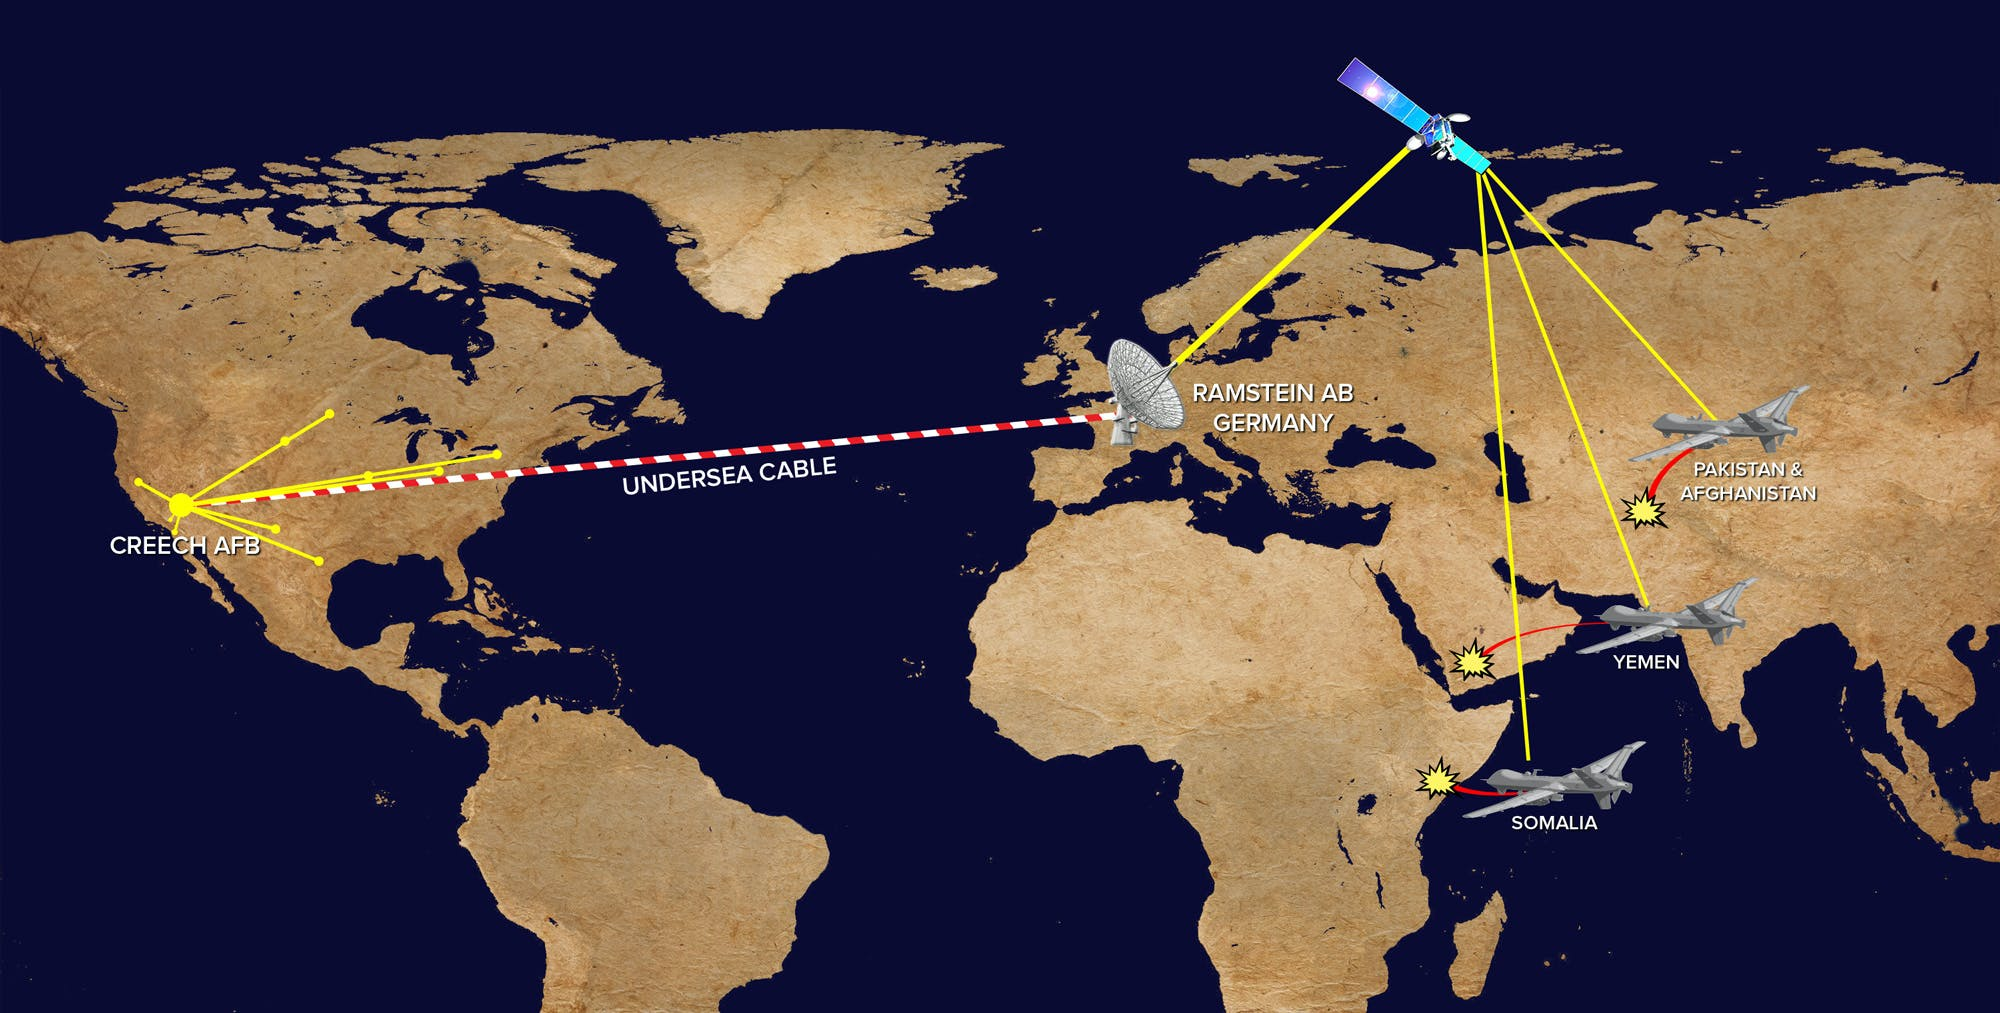 u s drone warfare essay example The future of drone warfare by frederick p hitz  region in the us's global war on terrorism (gwot)  for example, the state of israel has been in the .